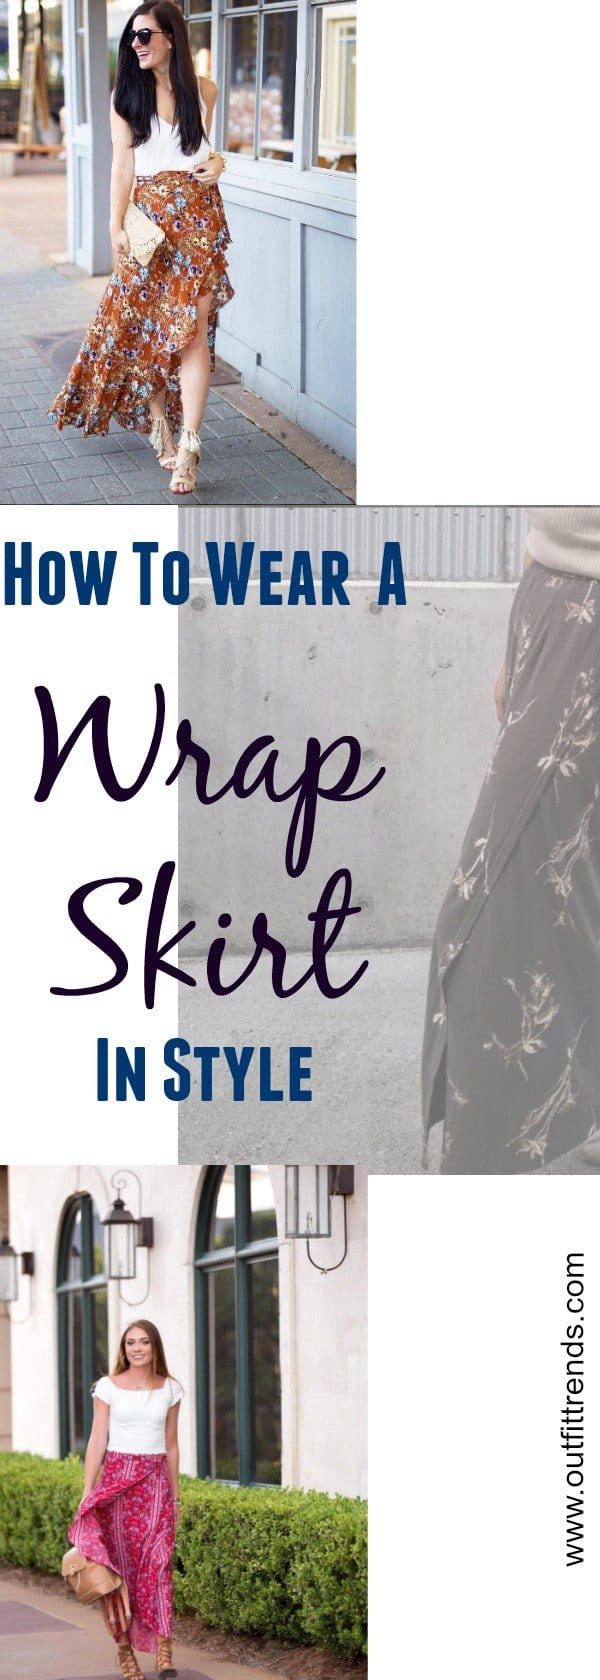 Ping-Pong- Stylish Wrap Skirt Outfits-28 Ideas on How to Wear Wrap Skirts